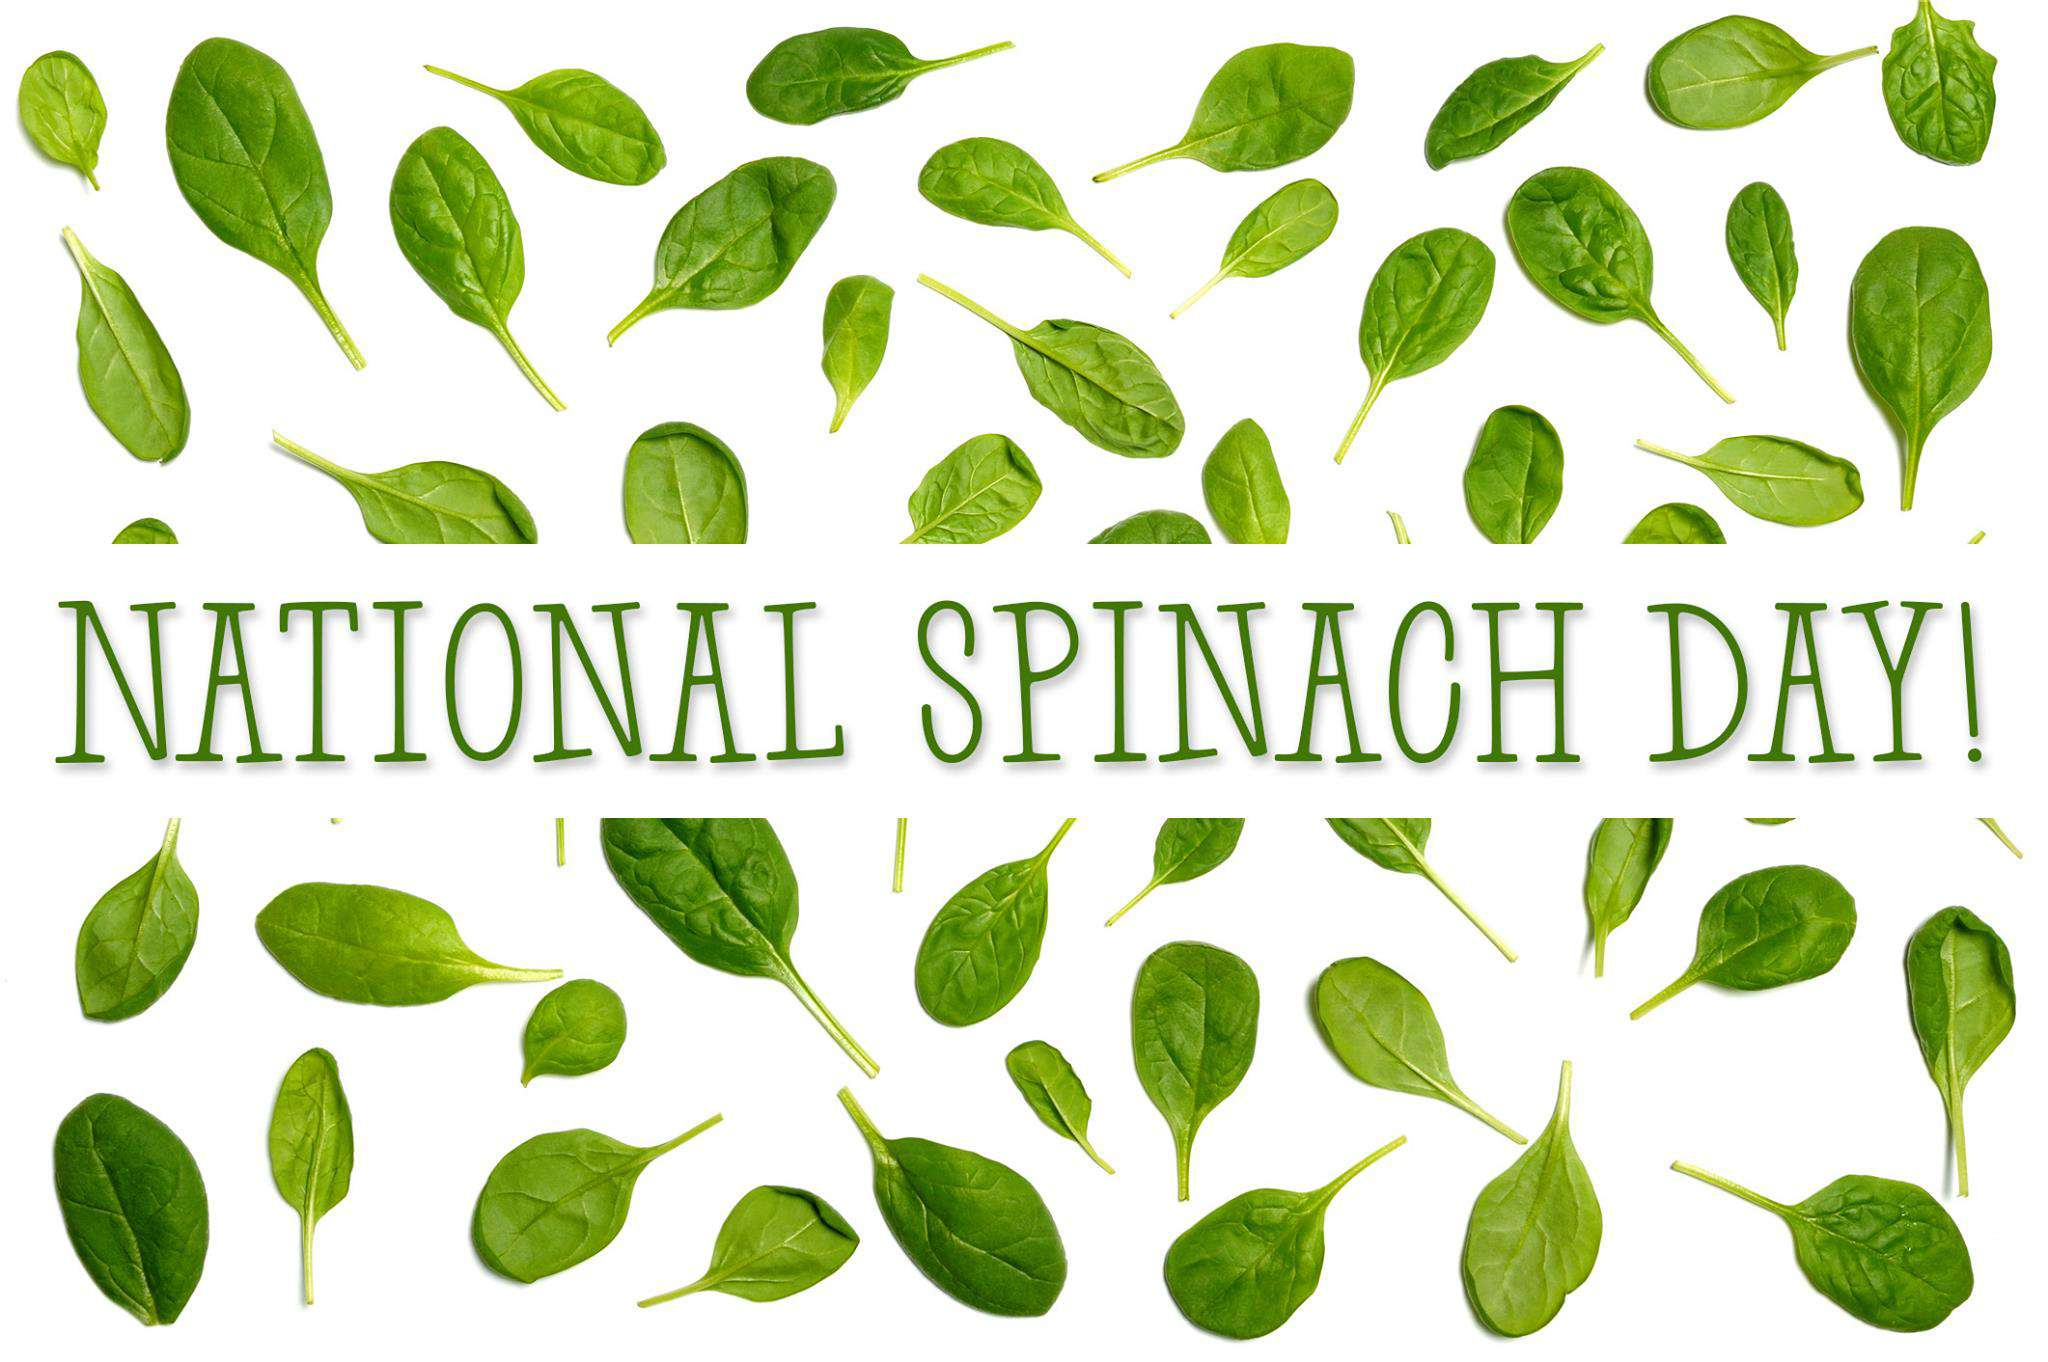 National Spinach Day Wishes Beautiful Image